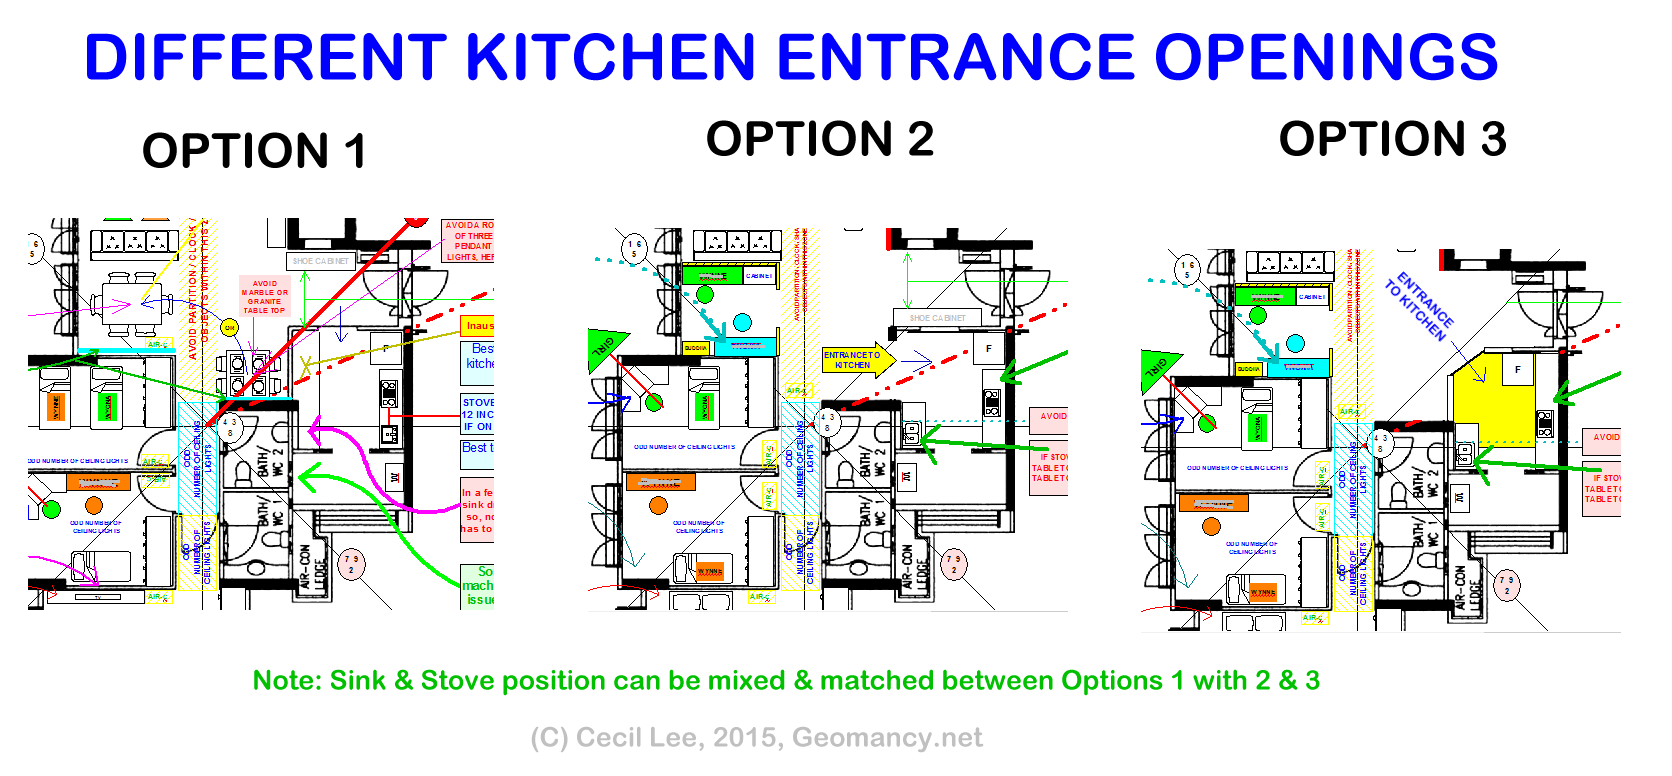 2014 2015 Hdb 5 Bedroom Layout Kitchen Entrance Feng Shui Tips Guidelines Fengshui